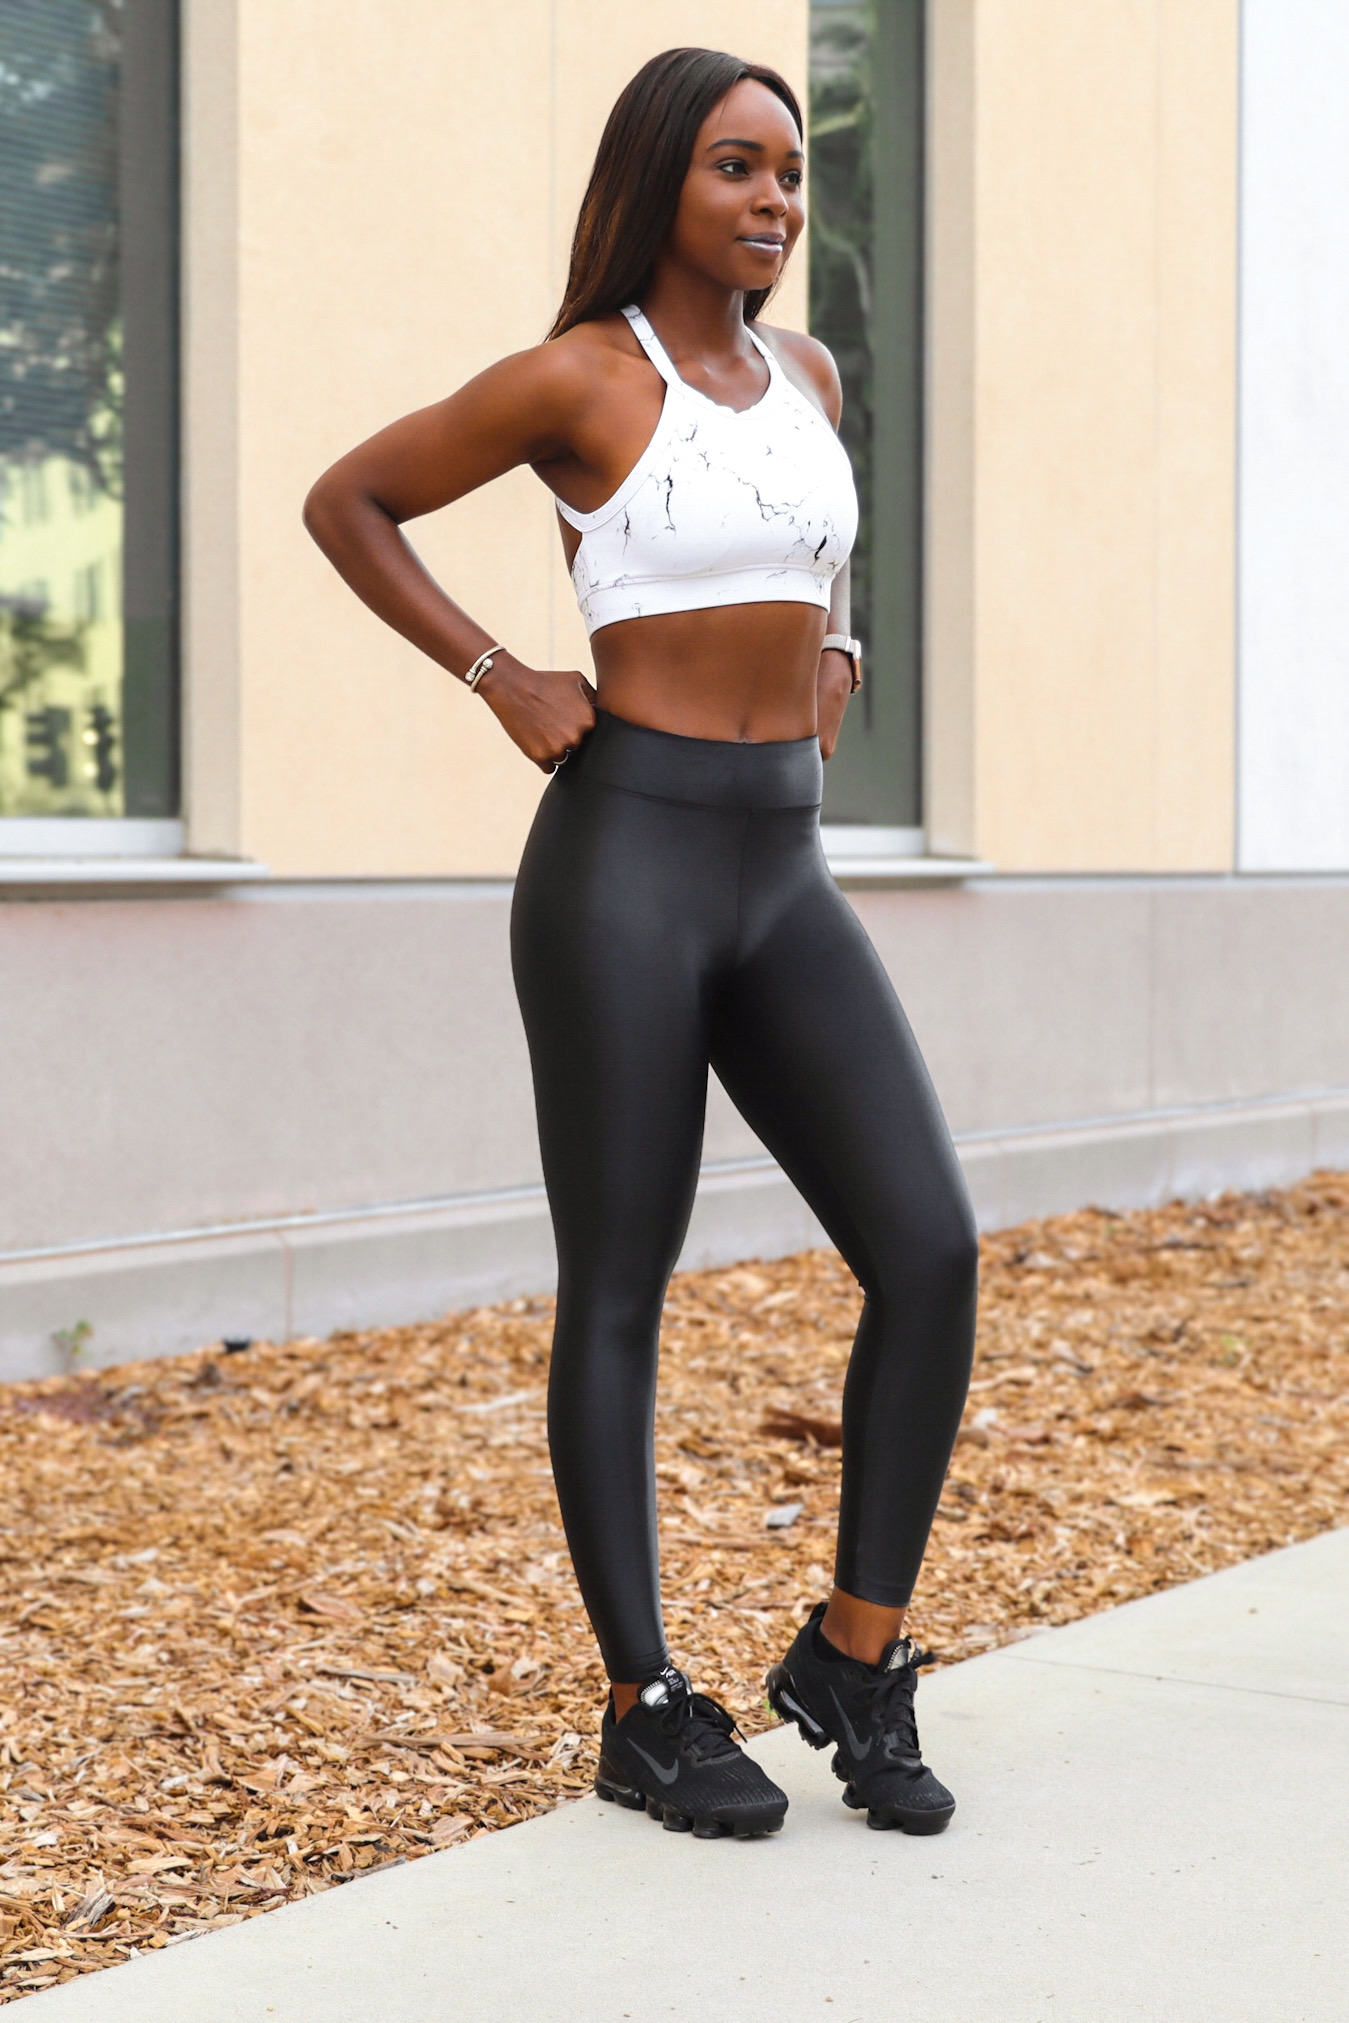 Koral activewear reviews